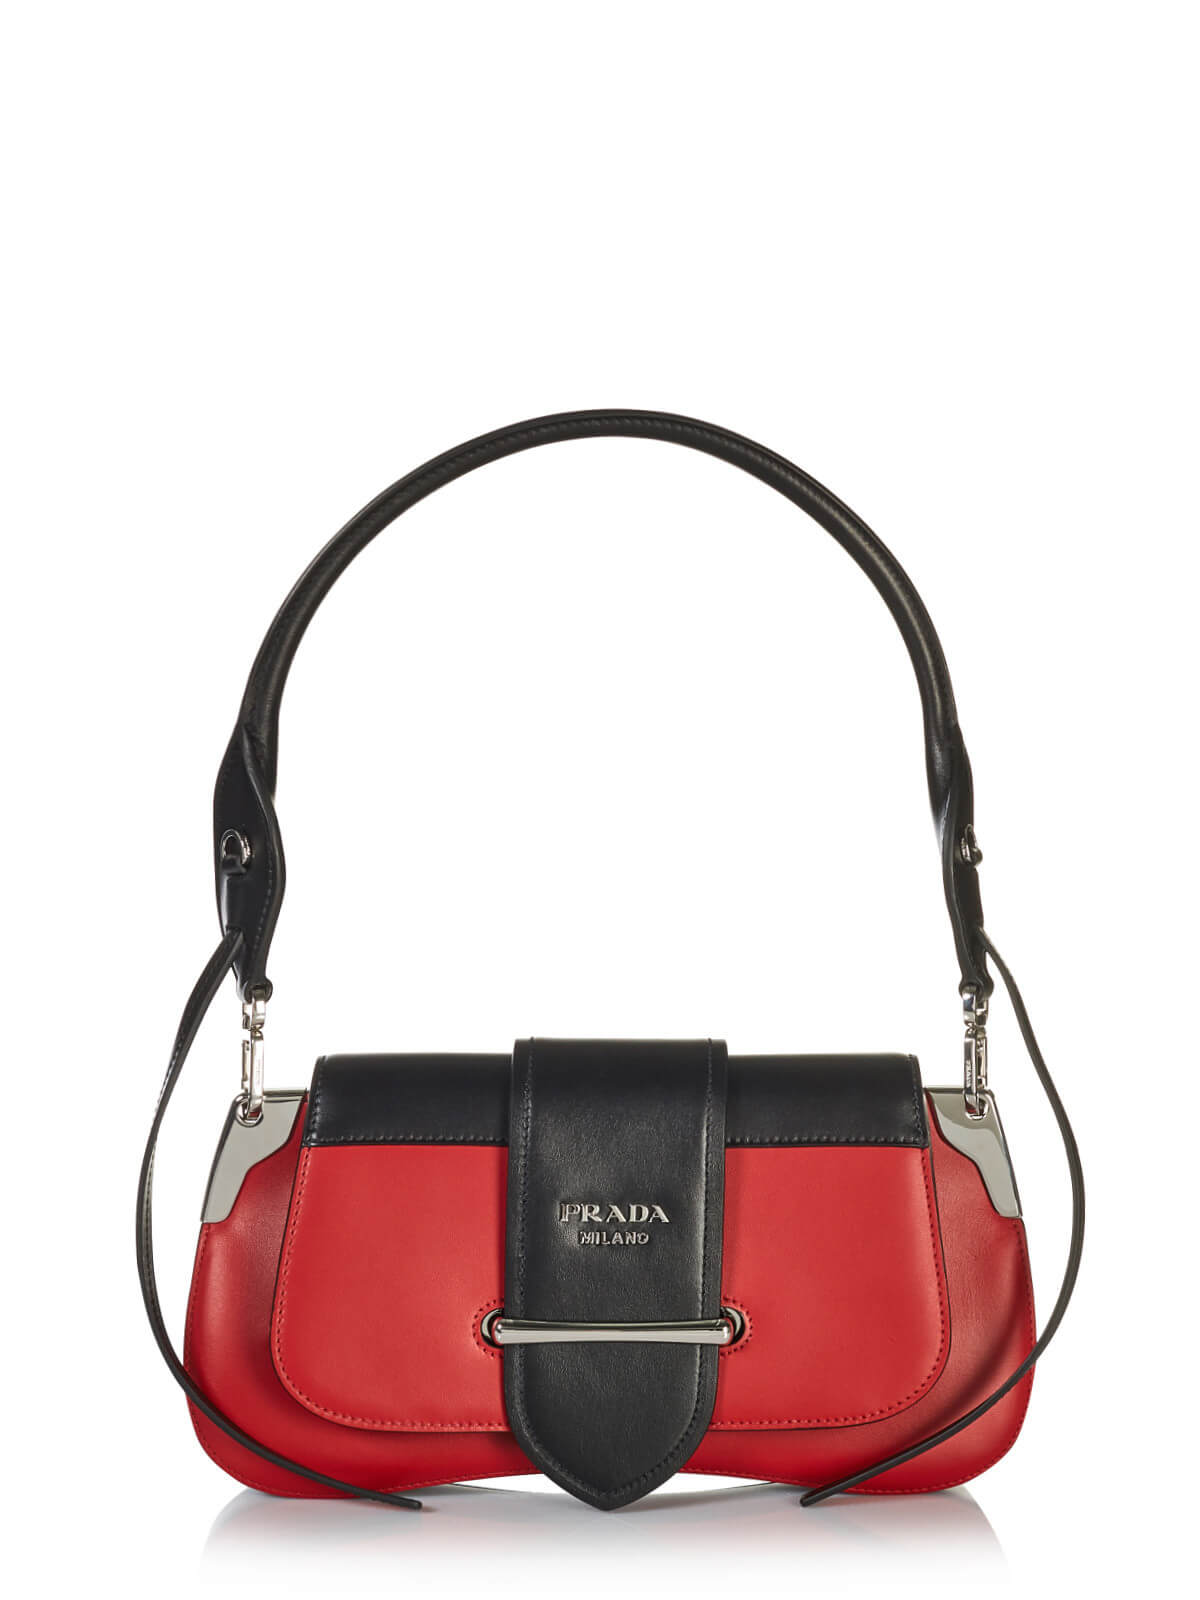 6417c4931c1e Prada Sidonie leather shoulder bag | Fashionesta online shop